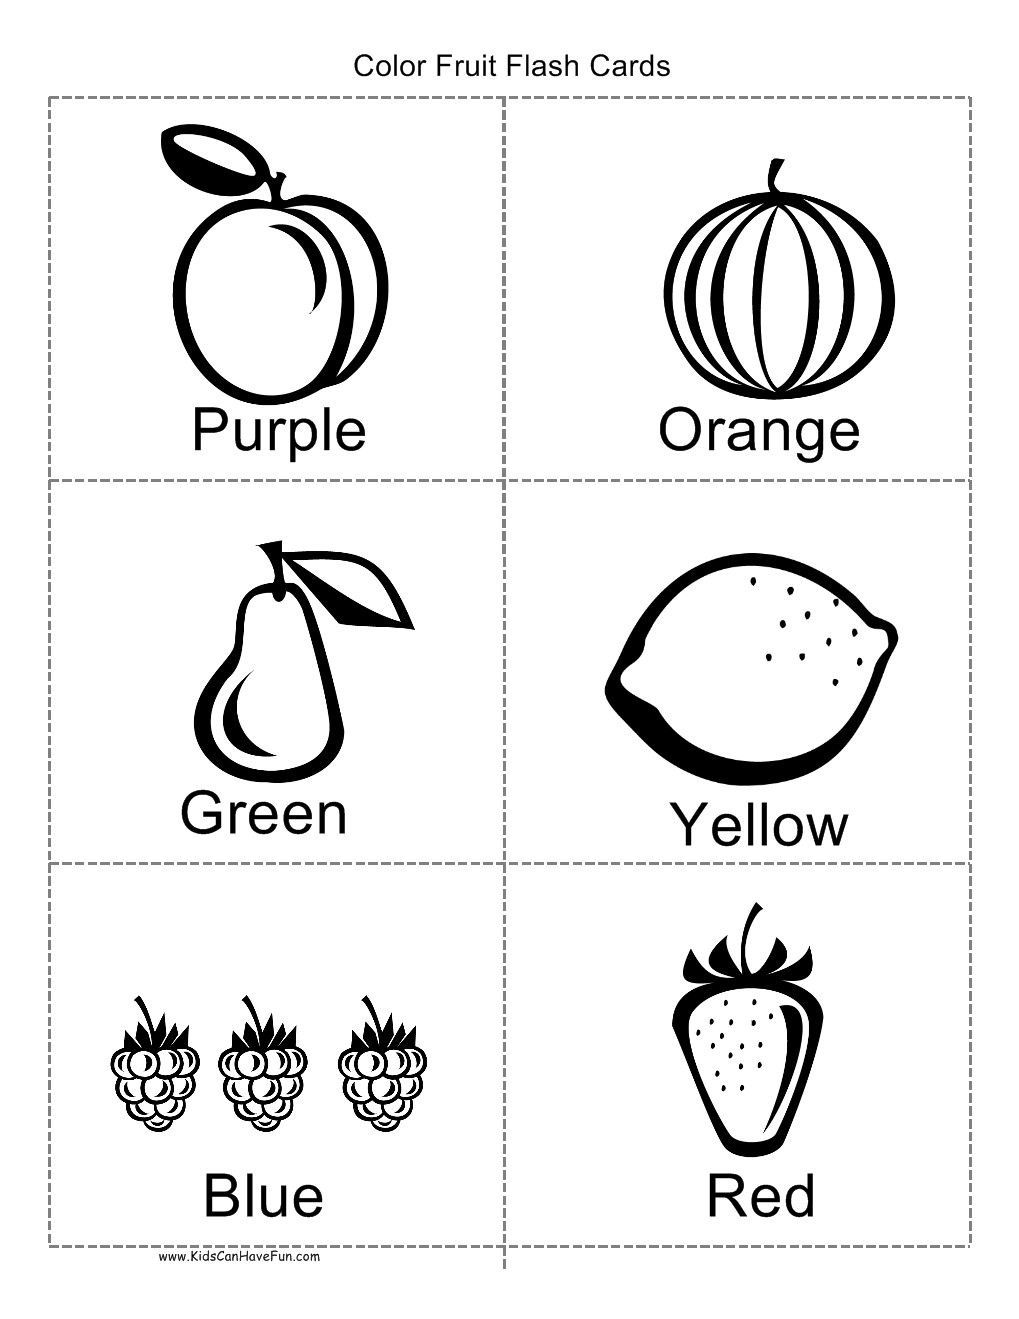 coloring fruits worksheets for kindergarten free summer fruits coloring page pdf for toddlers worksheets coloring for fruits kindergarten